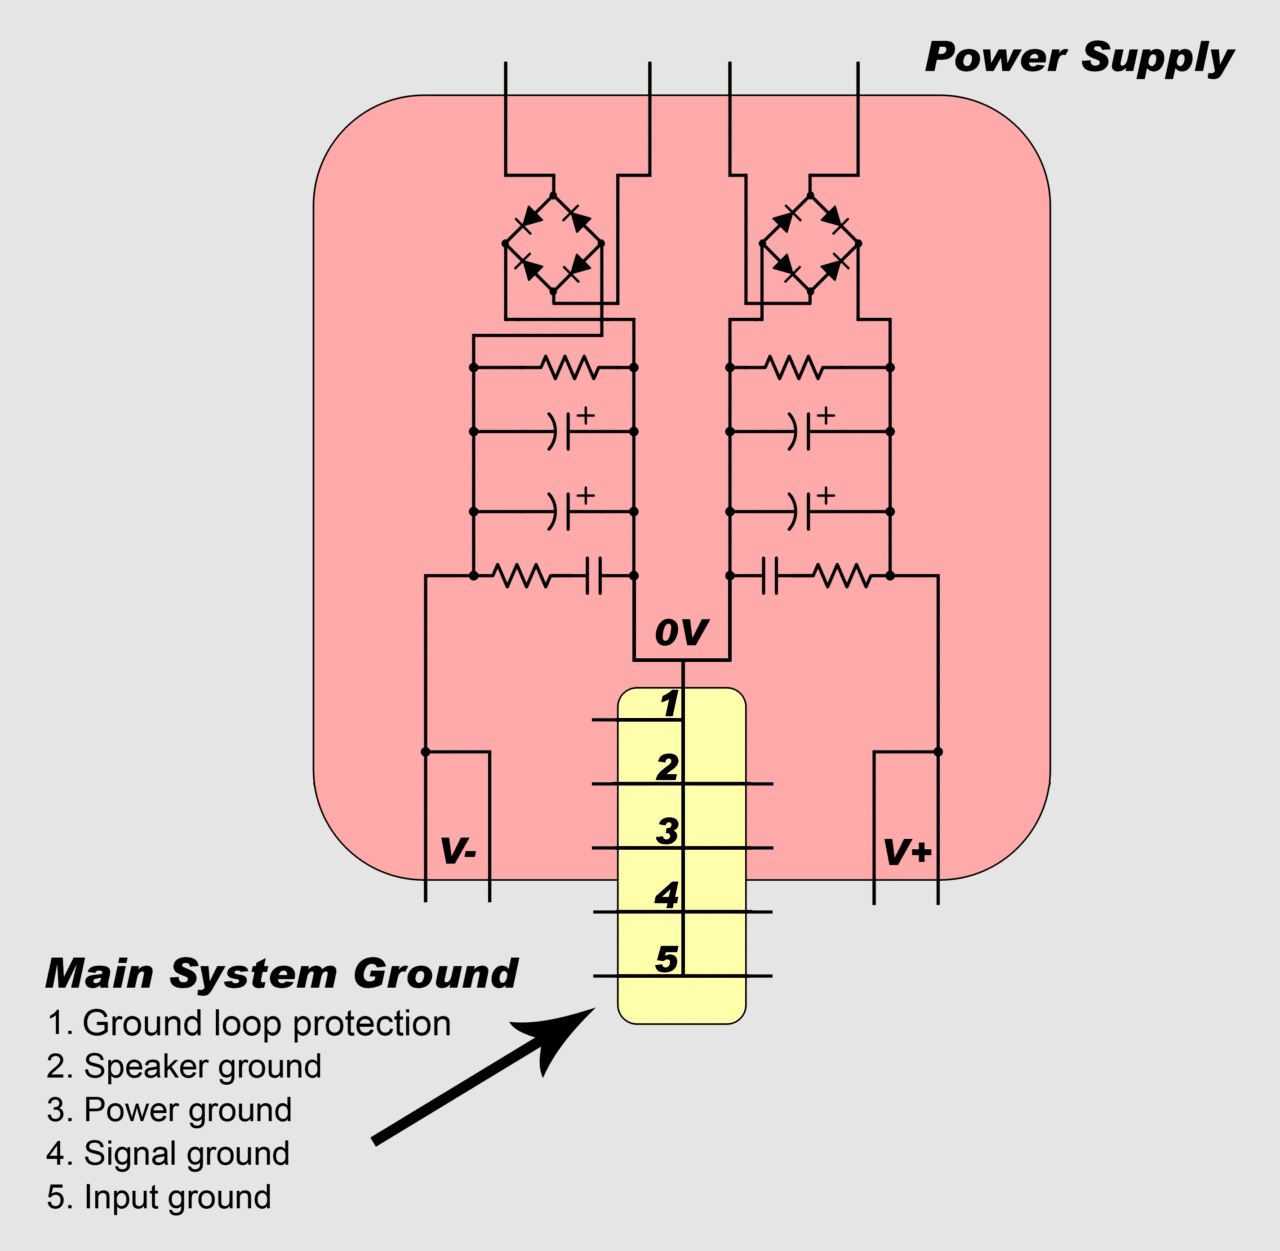 hight resolution of  main system ground so that higher current grounds are closer to the reservoir capacitors the diagram below shows how to order the ground connections